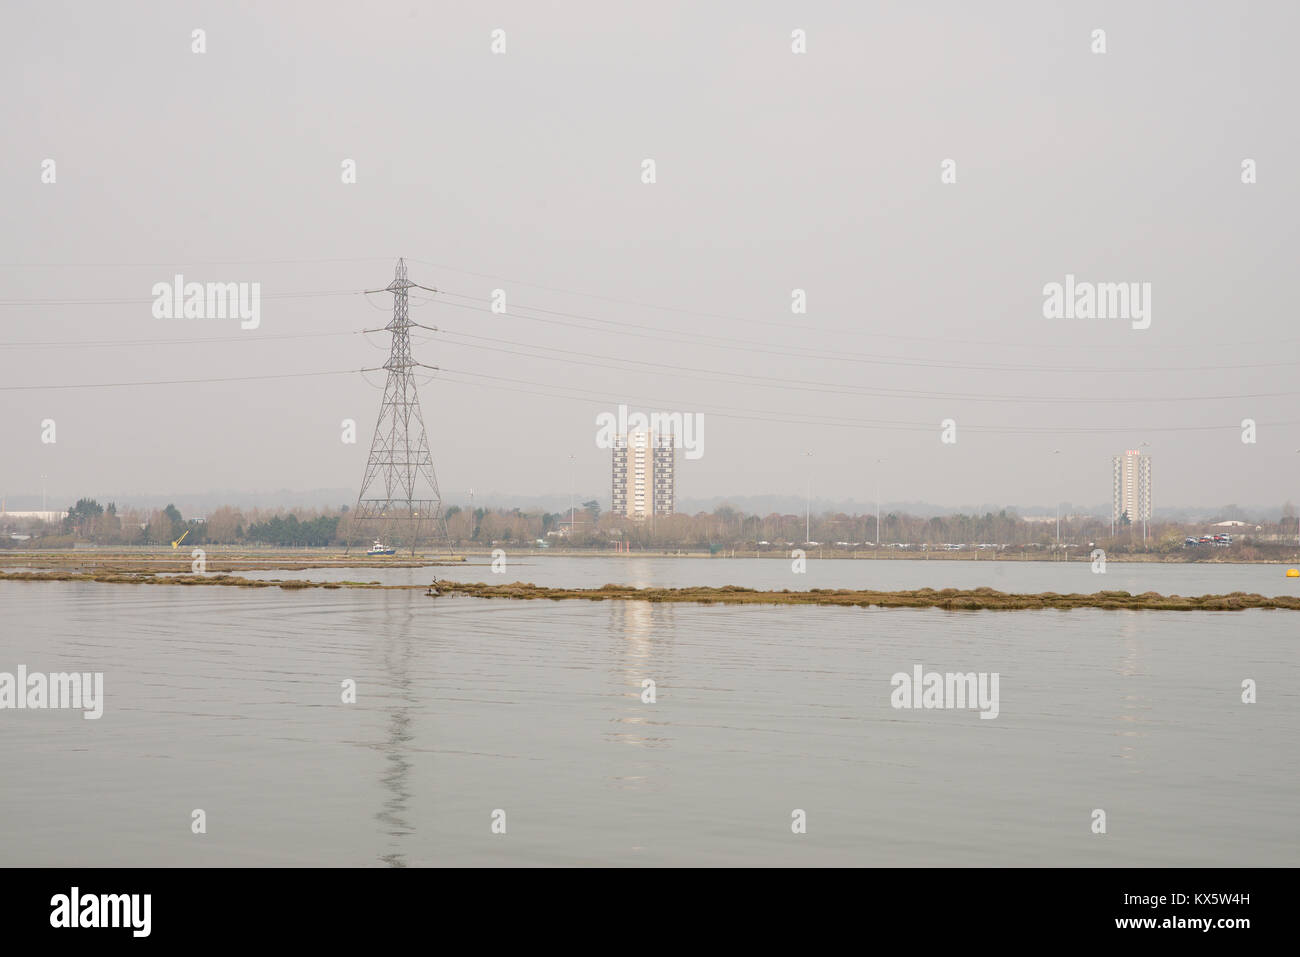 Electrical pylon and hi-rise apartments - Stock Image